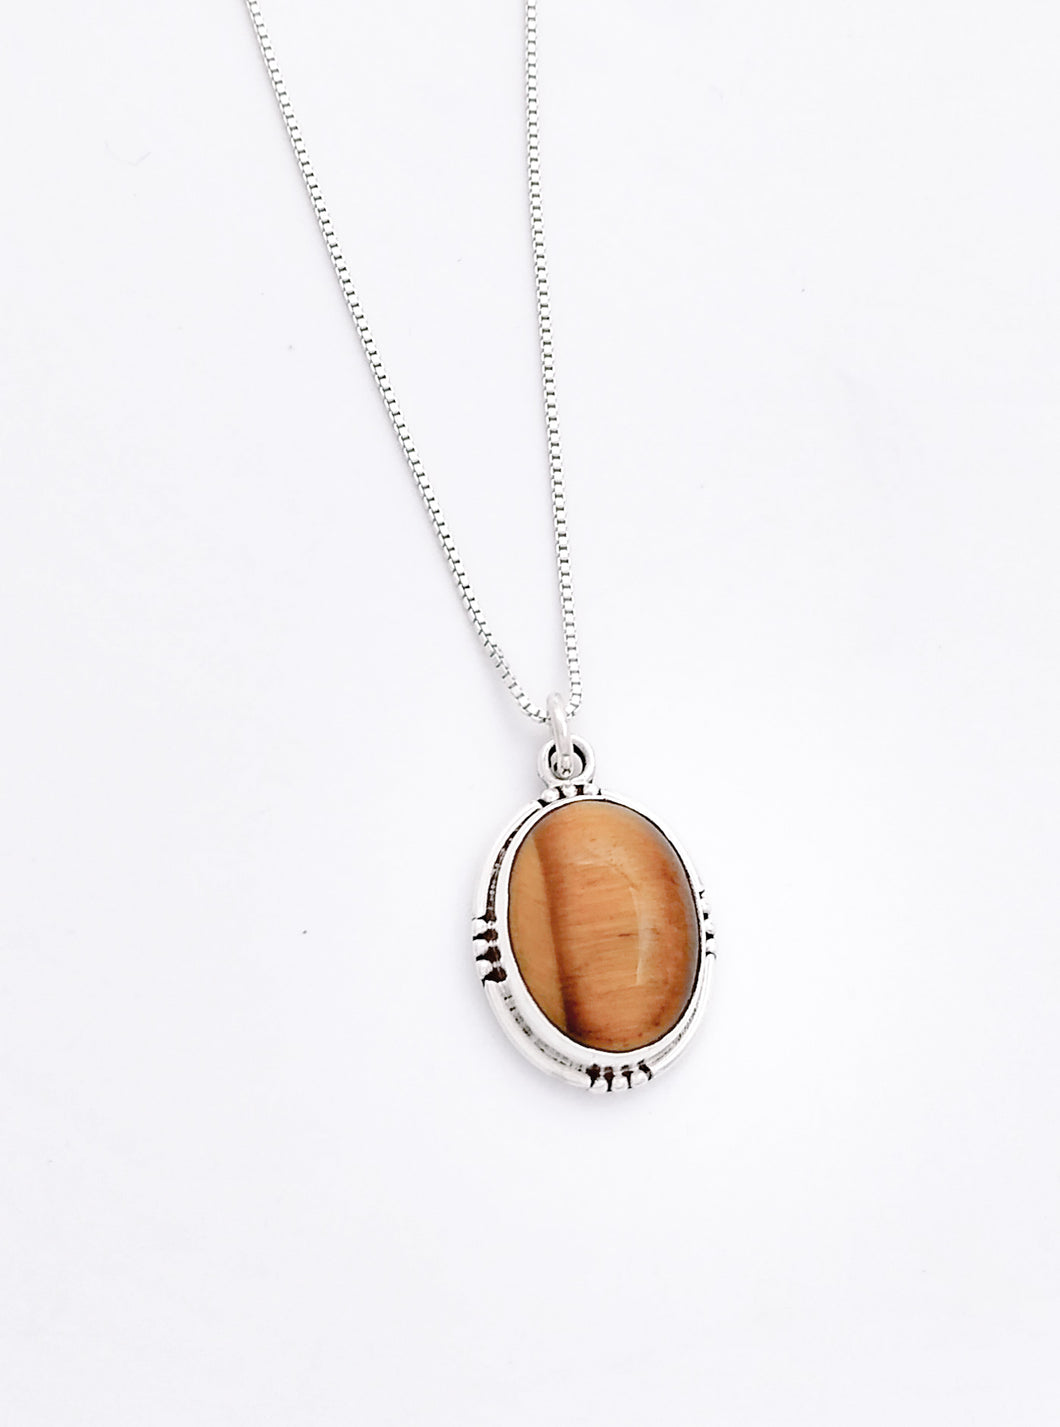 Large Oval Tiger Eye Stone set in sterling silver with 3 small balls set in on 4 sides.